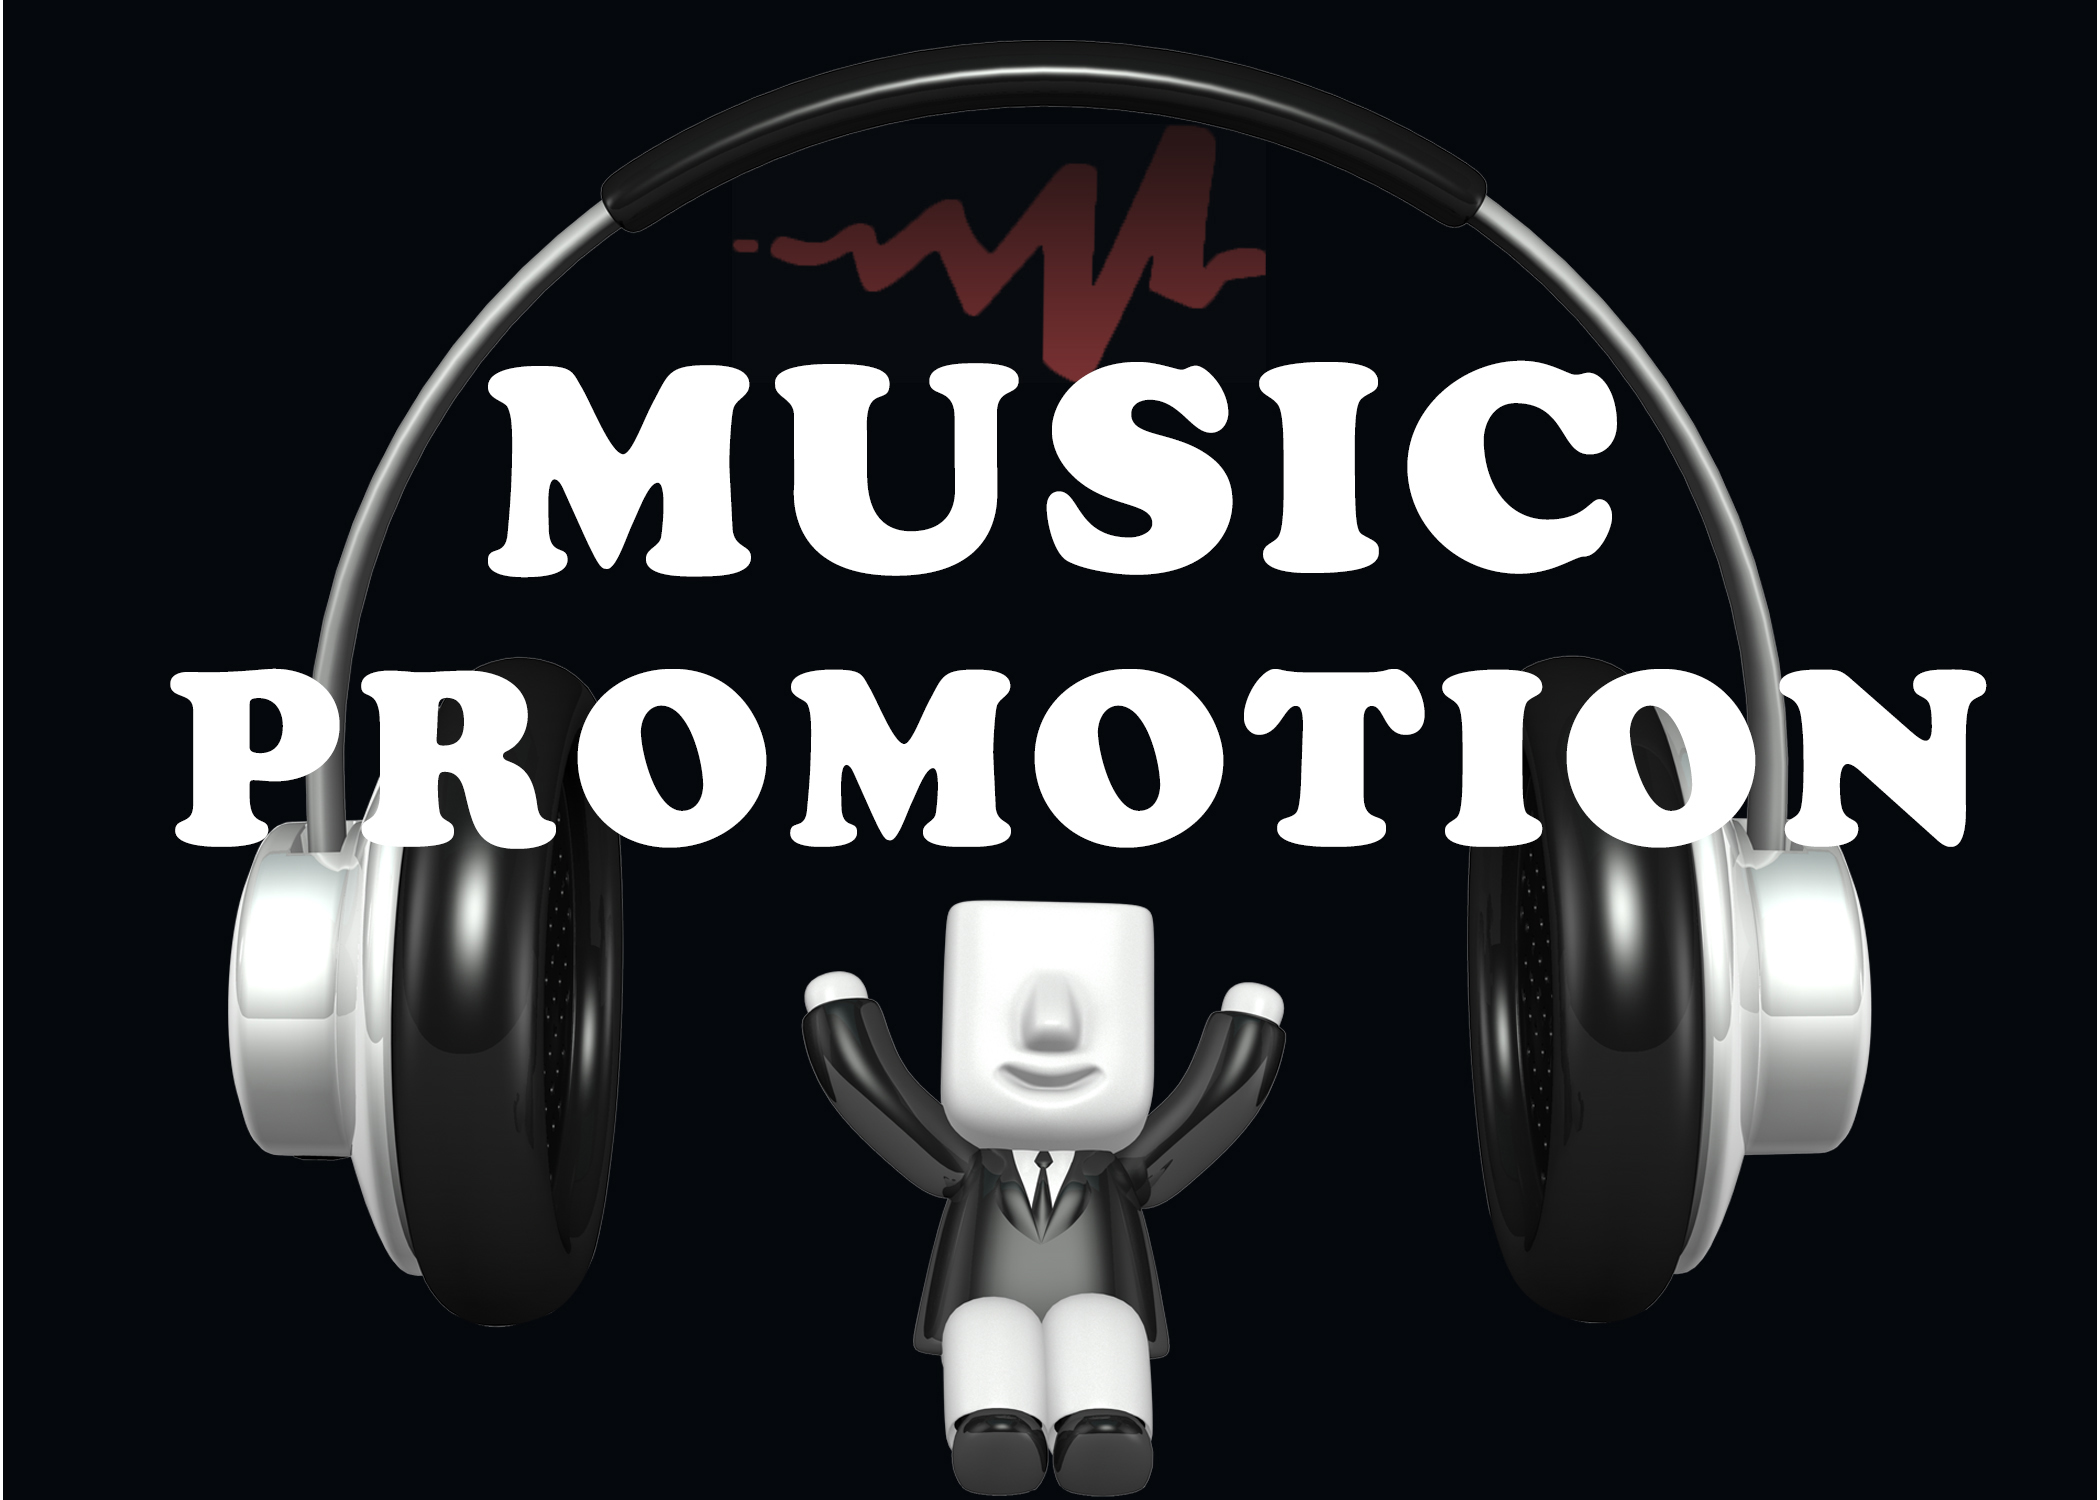 Get Organic Audio & Music Promotion Through GaudioMackspro Lovers